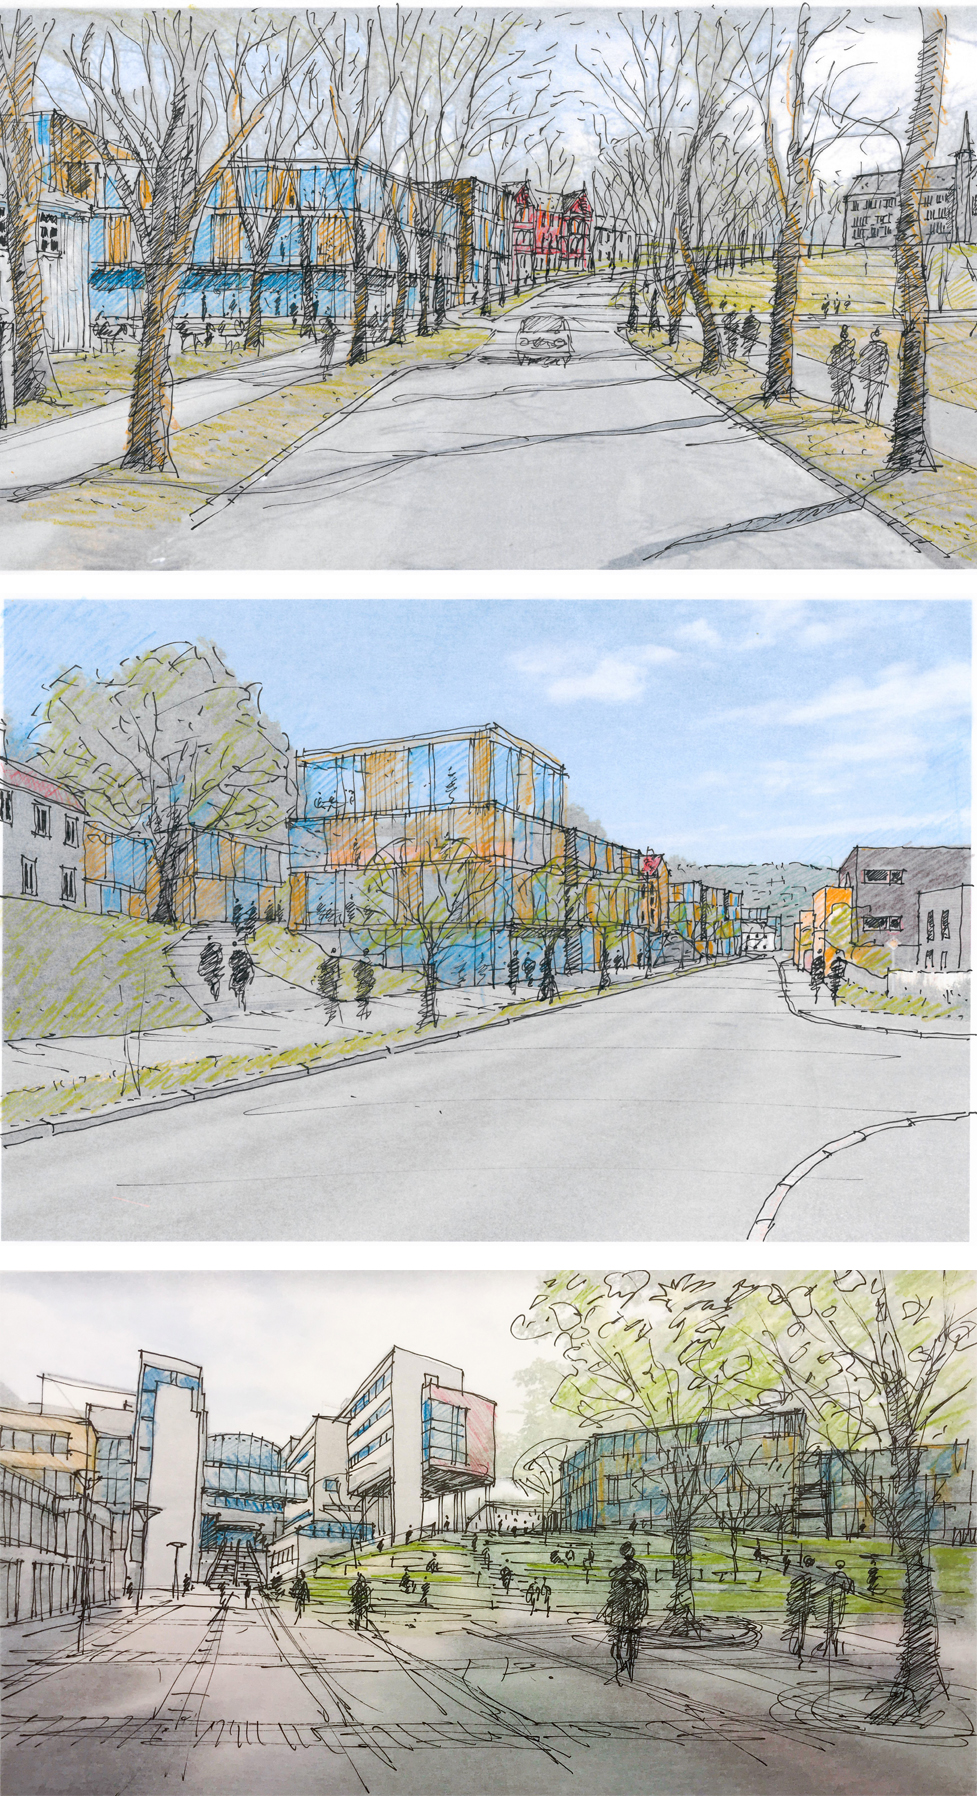 Collage with three sketches of potential new university buildings on Gløshaugen.